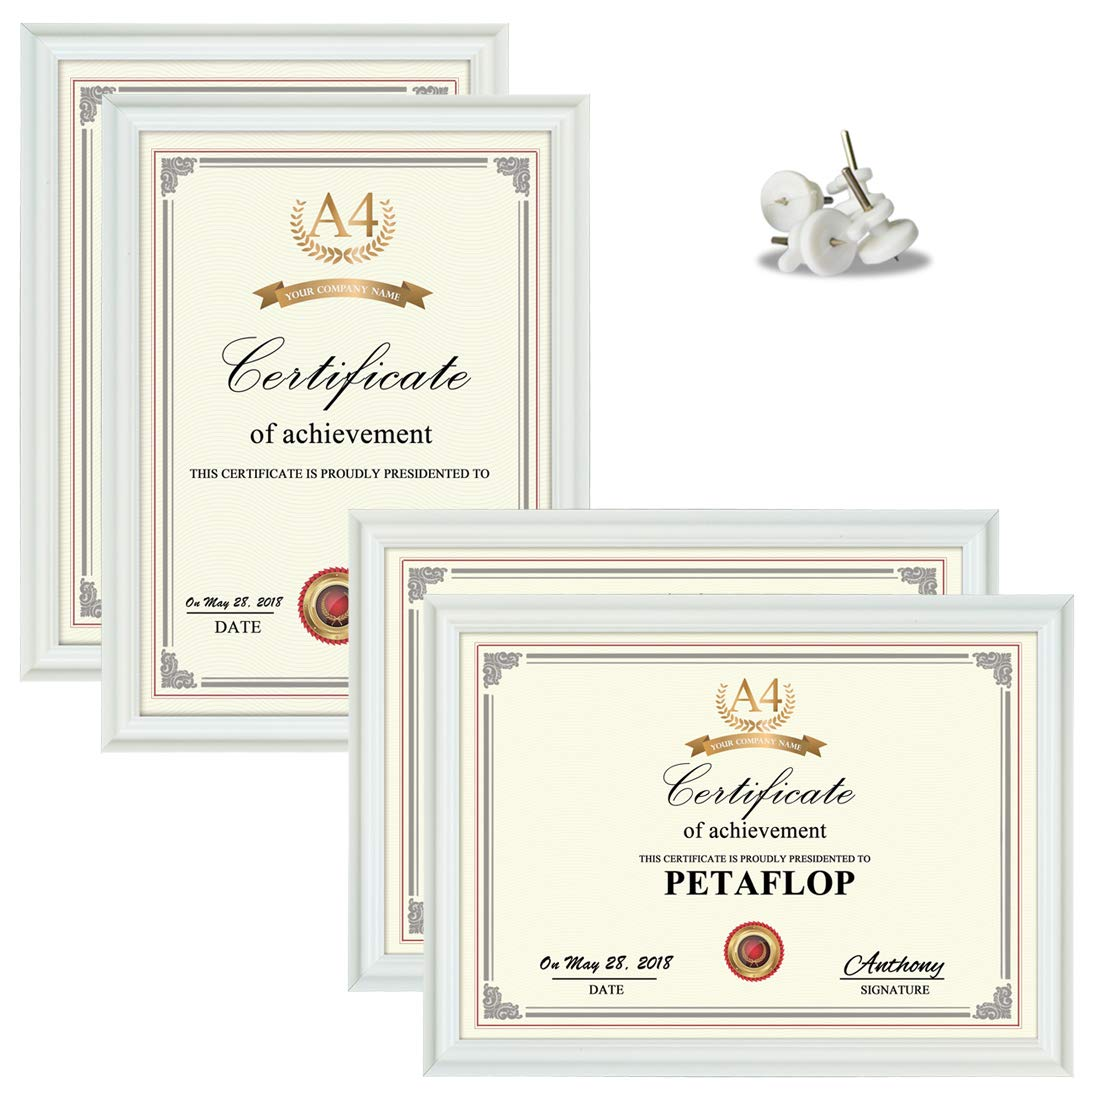 PETAFLOP A4 White Frames 21 x 29.7 cm Frame for Certificate Document Display 8 1/4 x 11 3/4 Inch Glass Covering, Set of 4 by PETAFLOP